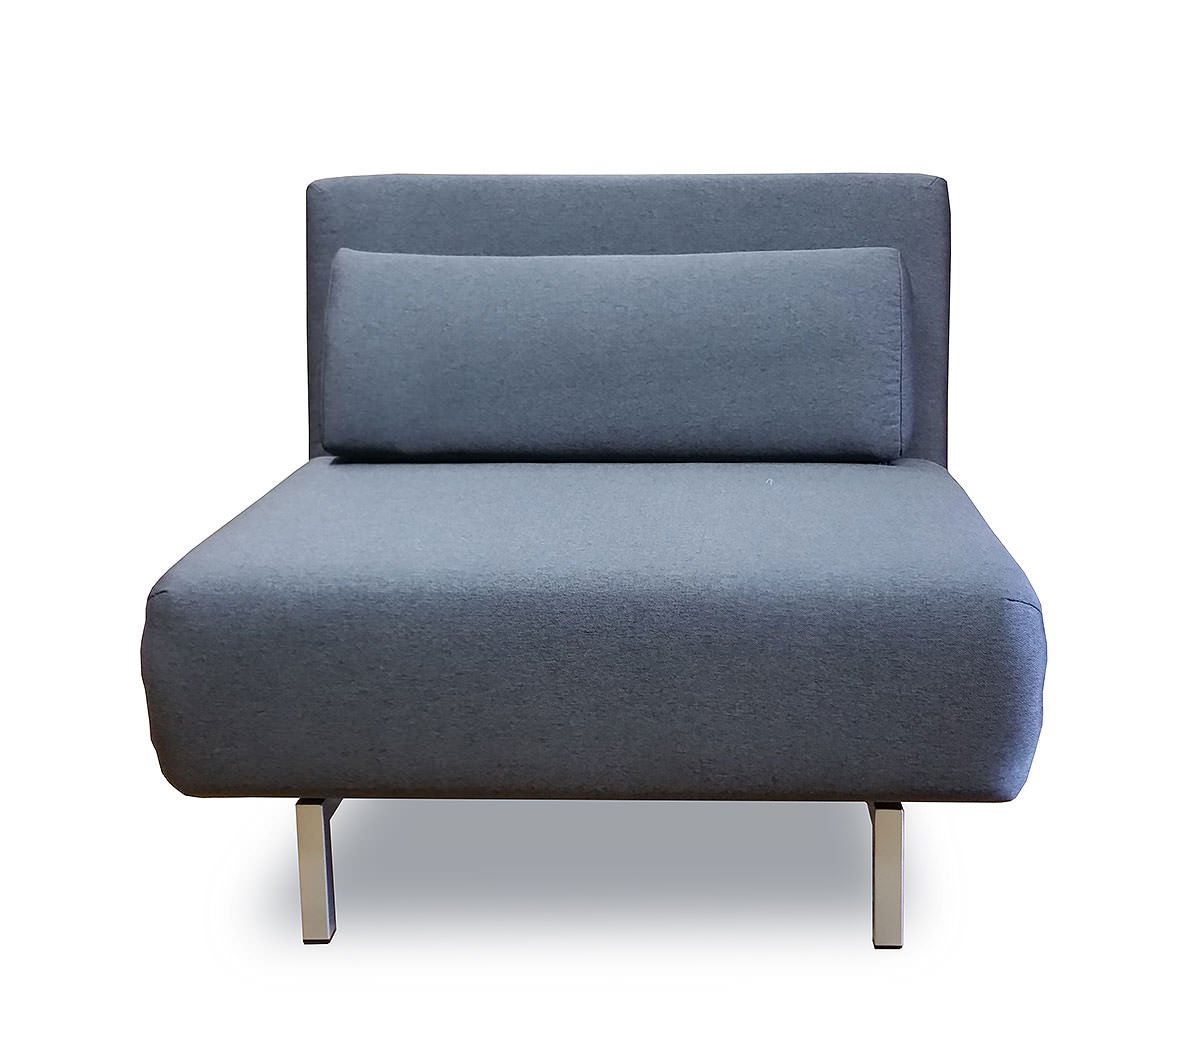 Convertible Gray Fabric Chair Bed LK06 by IDO